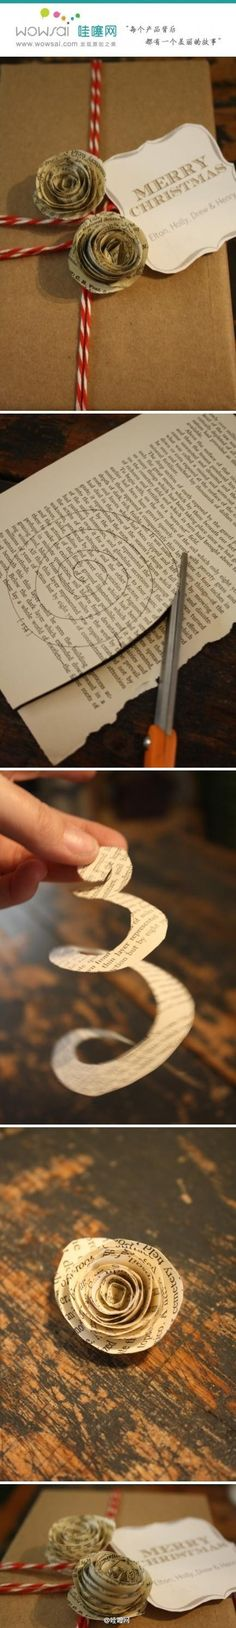 How to make paper roses.